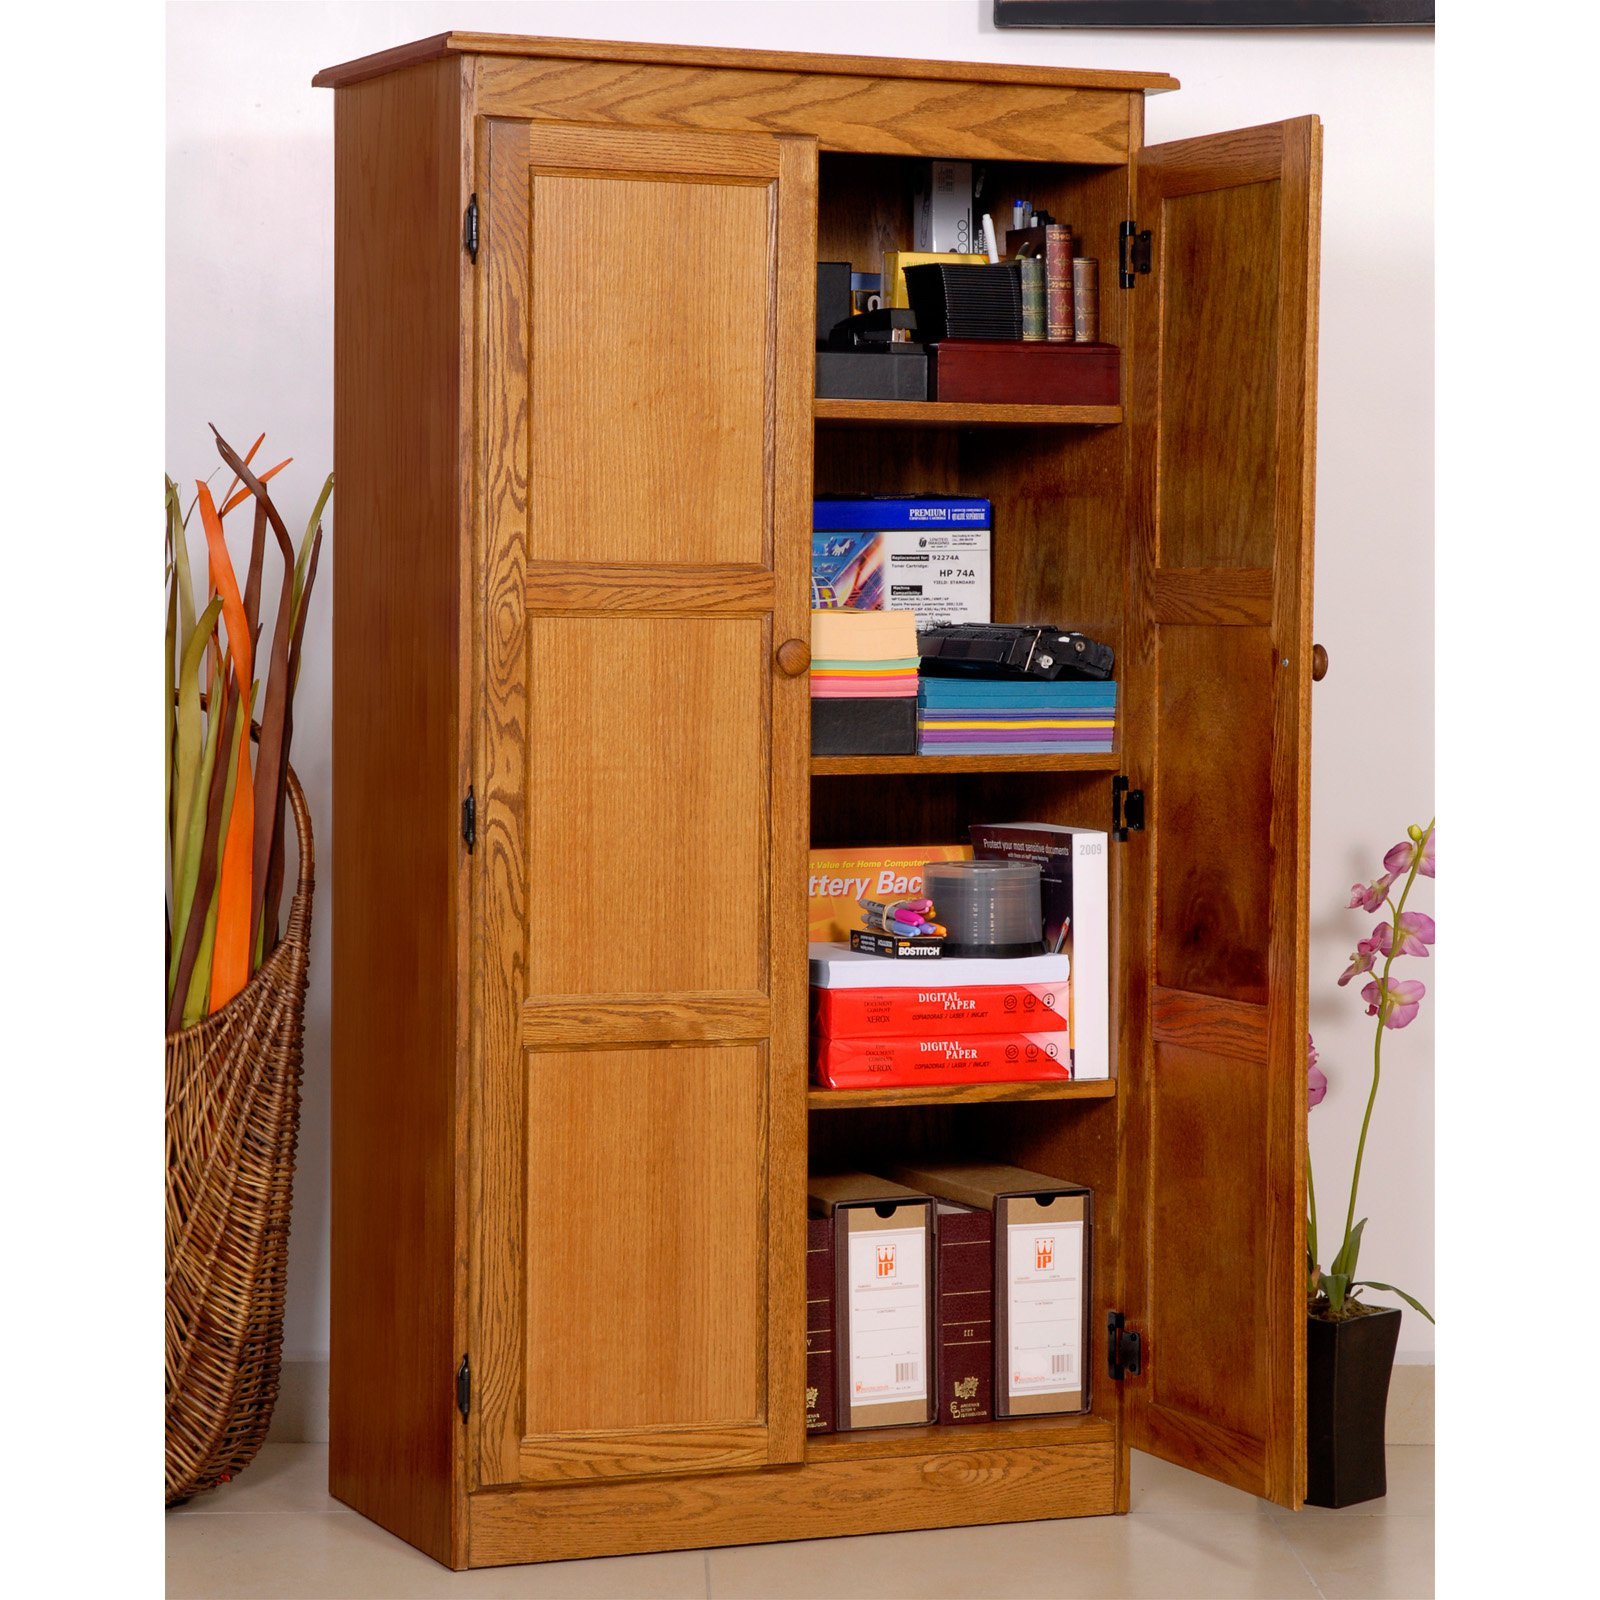 Concepts in Wood Dry Oak KT613A Storage/Utility Closet